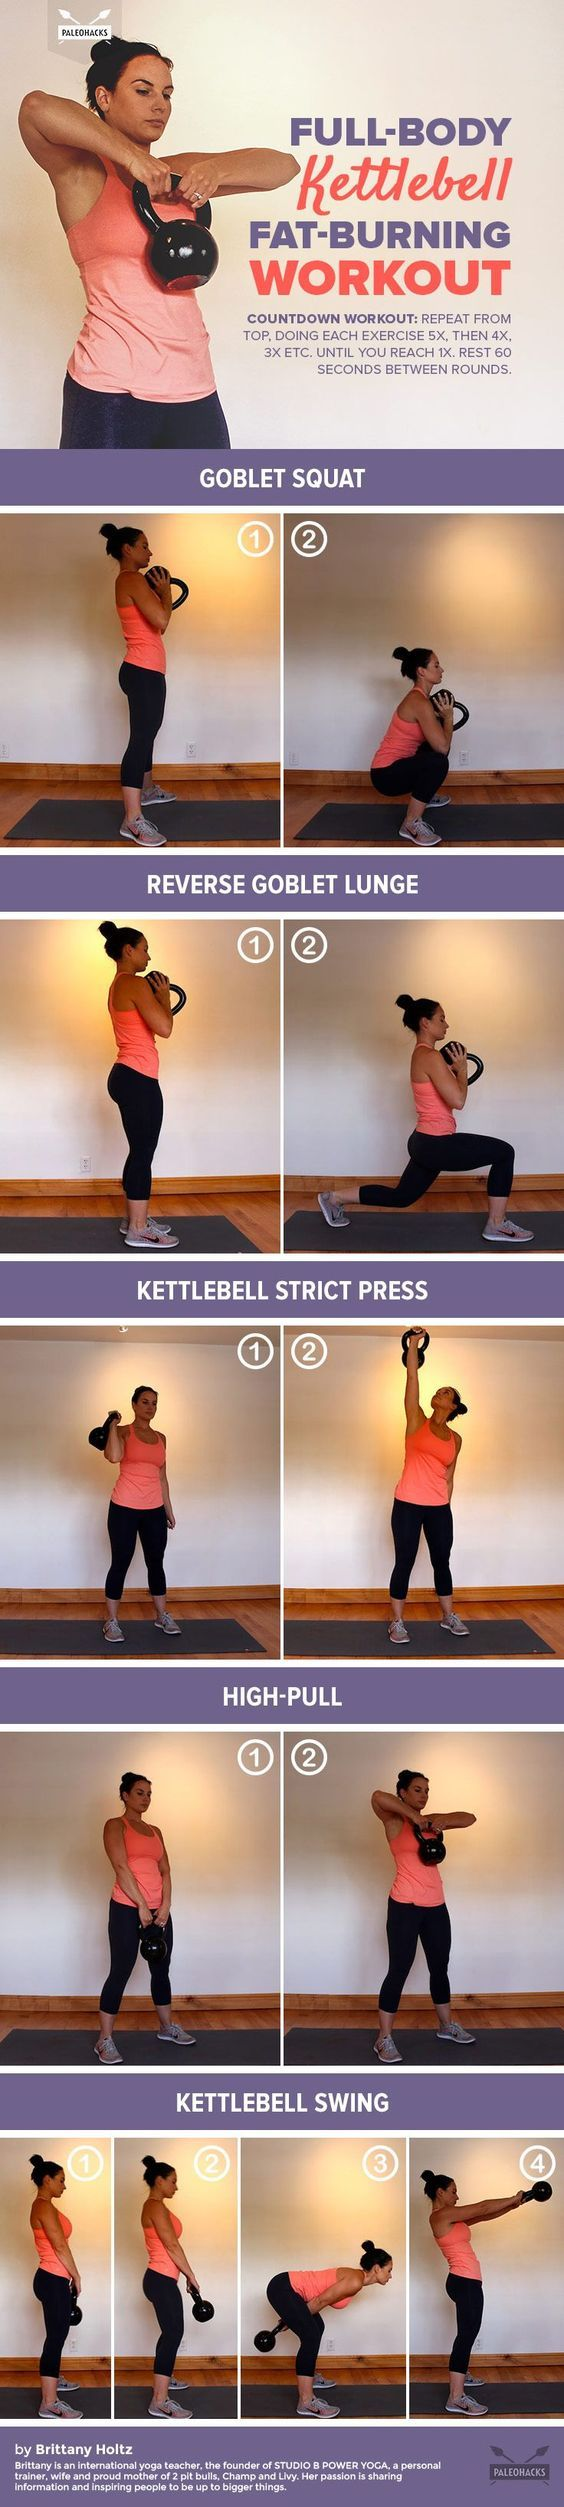 Full-Body Kettlebell Fat-Burning Workout For #health, #recipes, #free challenge groups, go to my website or message me… www.Beachbodycoach.com/mrdunn24